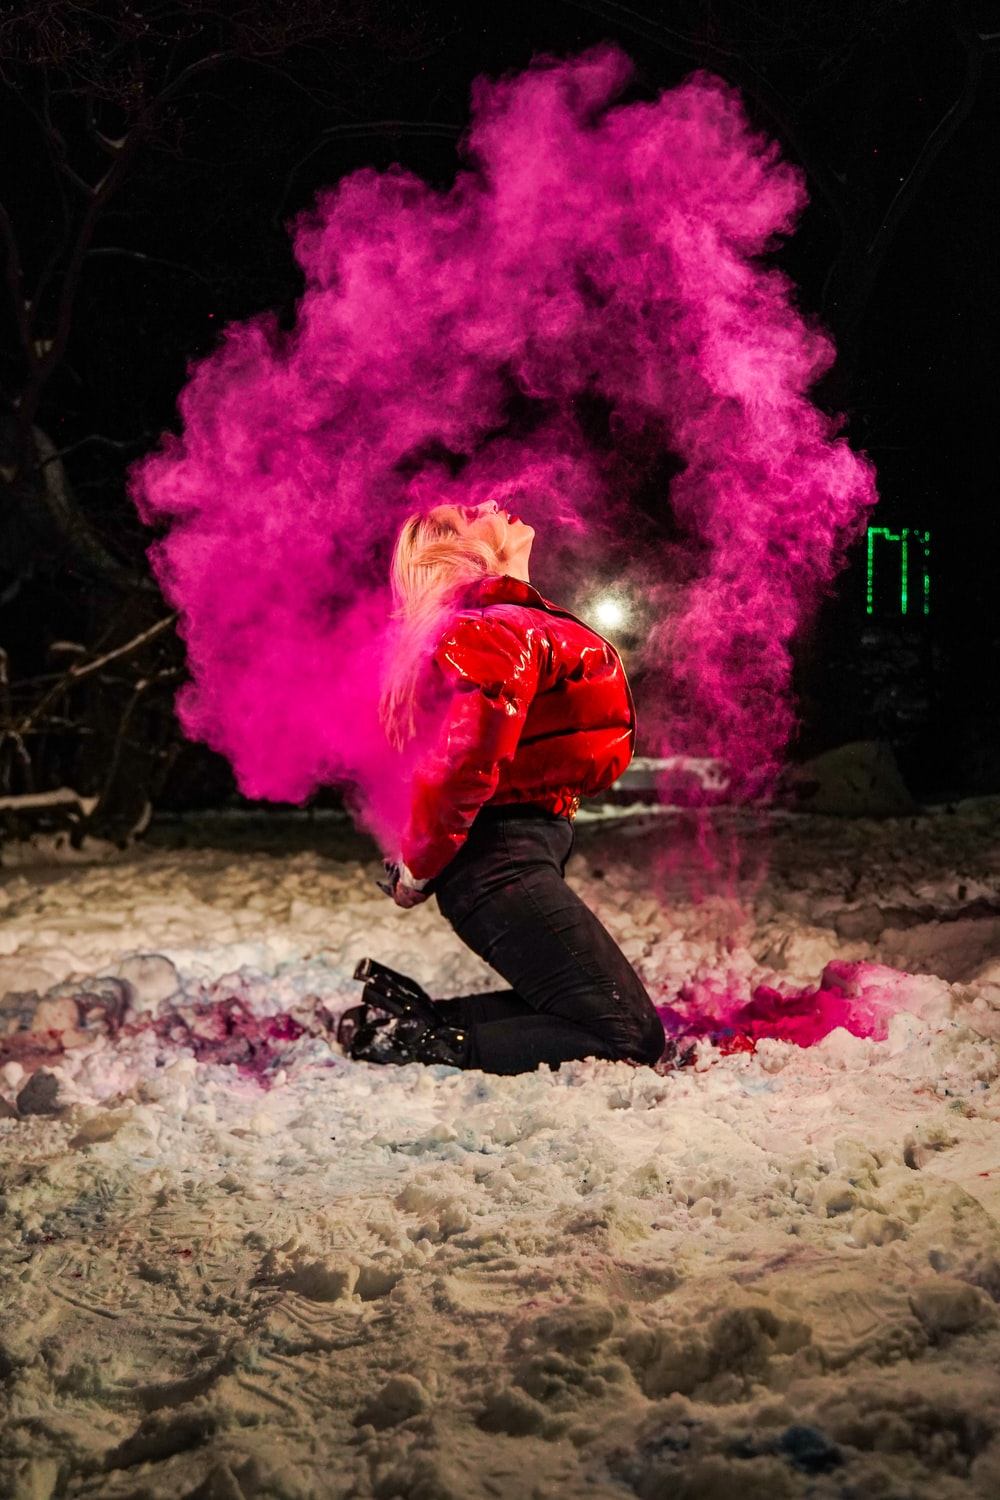 man in red jacket and black pants with pink smoke